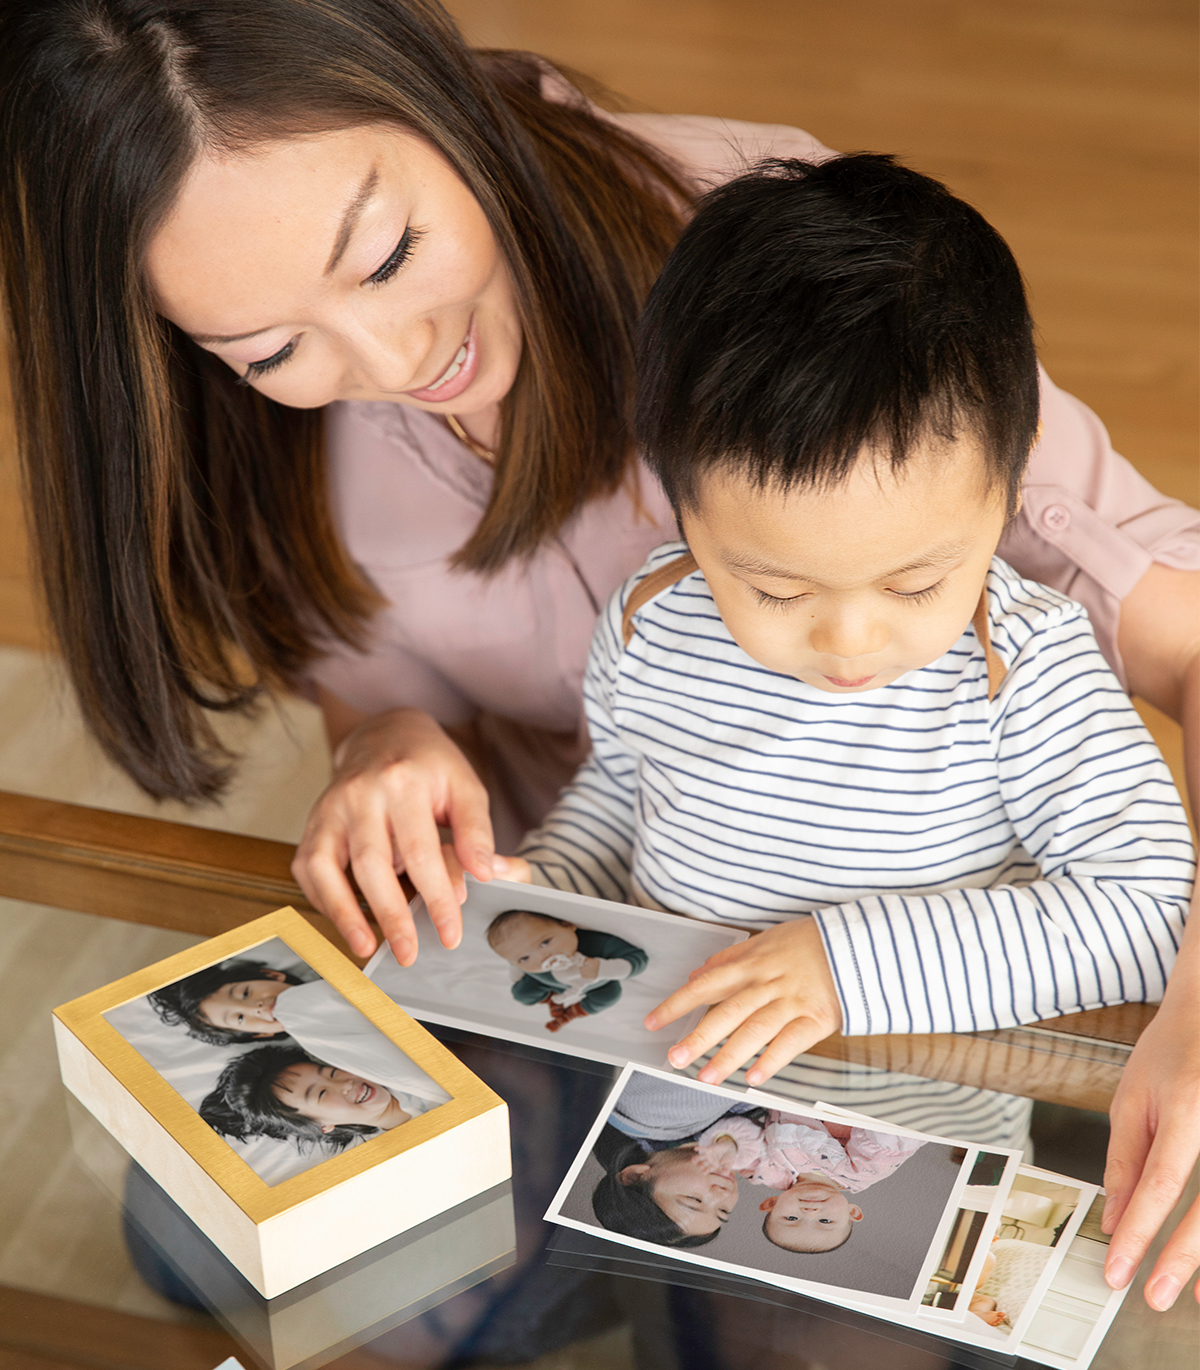 Mom and little boy choosing family photos to place inside Artifact Uprising Brass & Wood Display Box